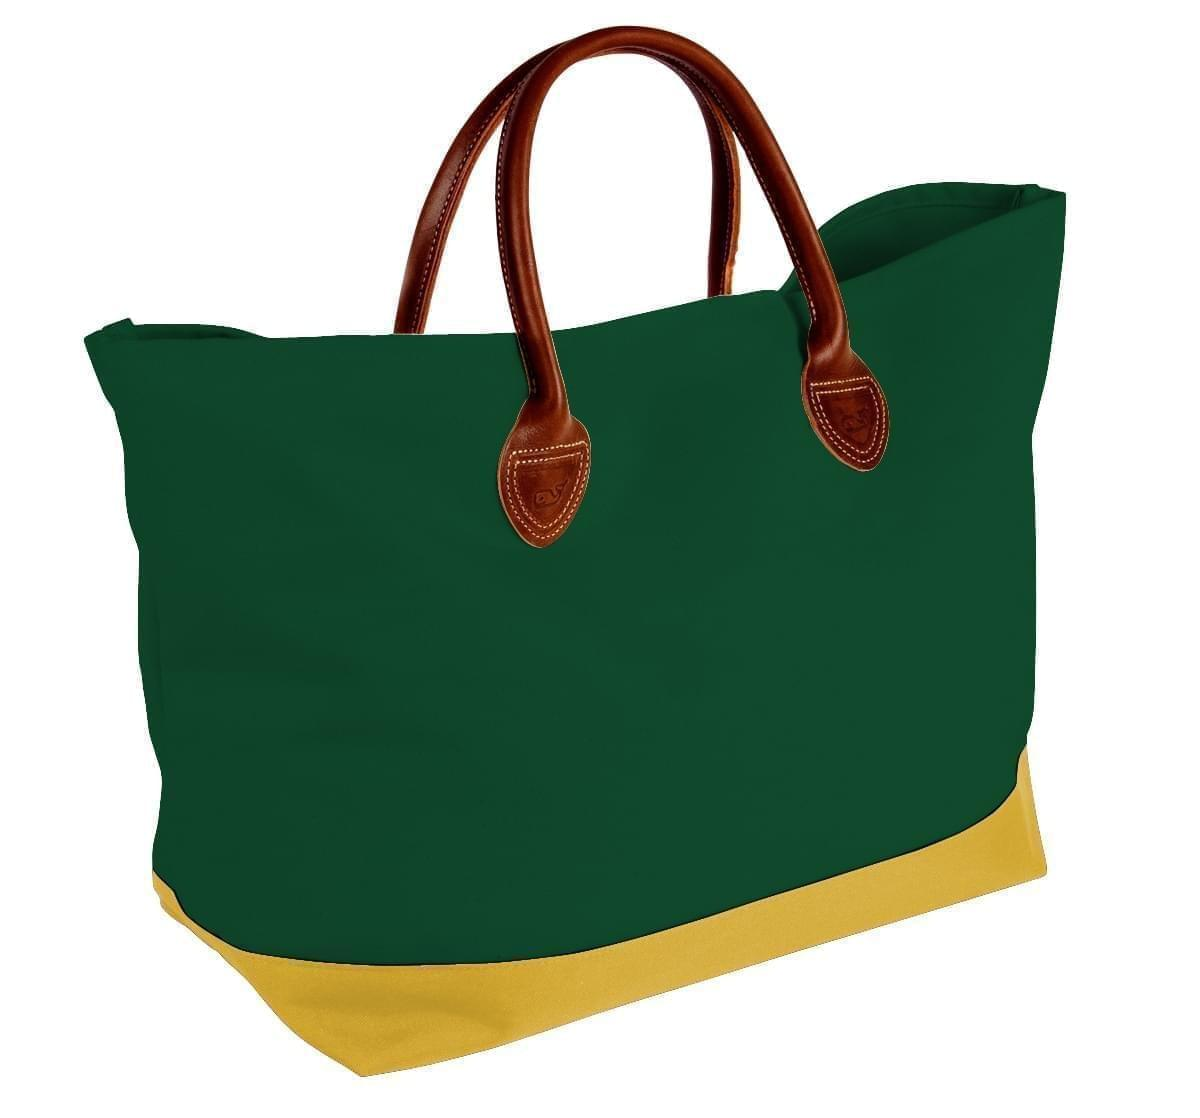 USA Made Canvas Leather Handle Totes, Hunter Green-Gold, 10899-QI9